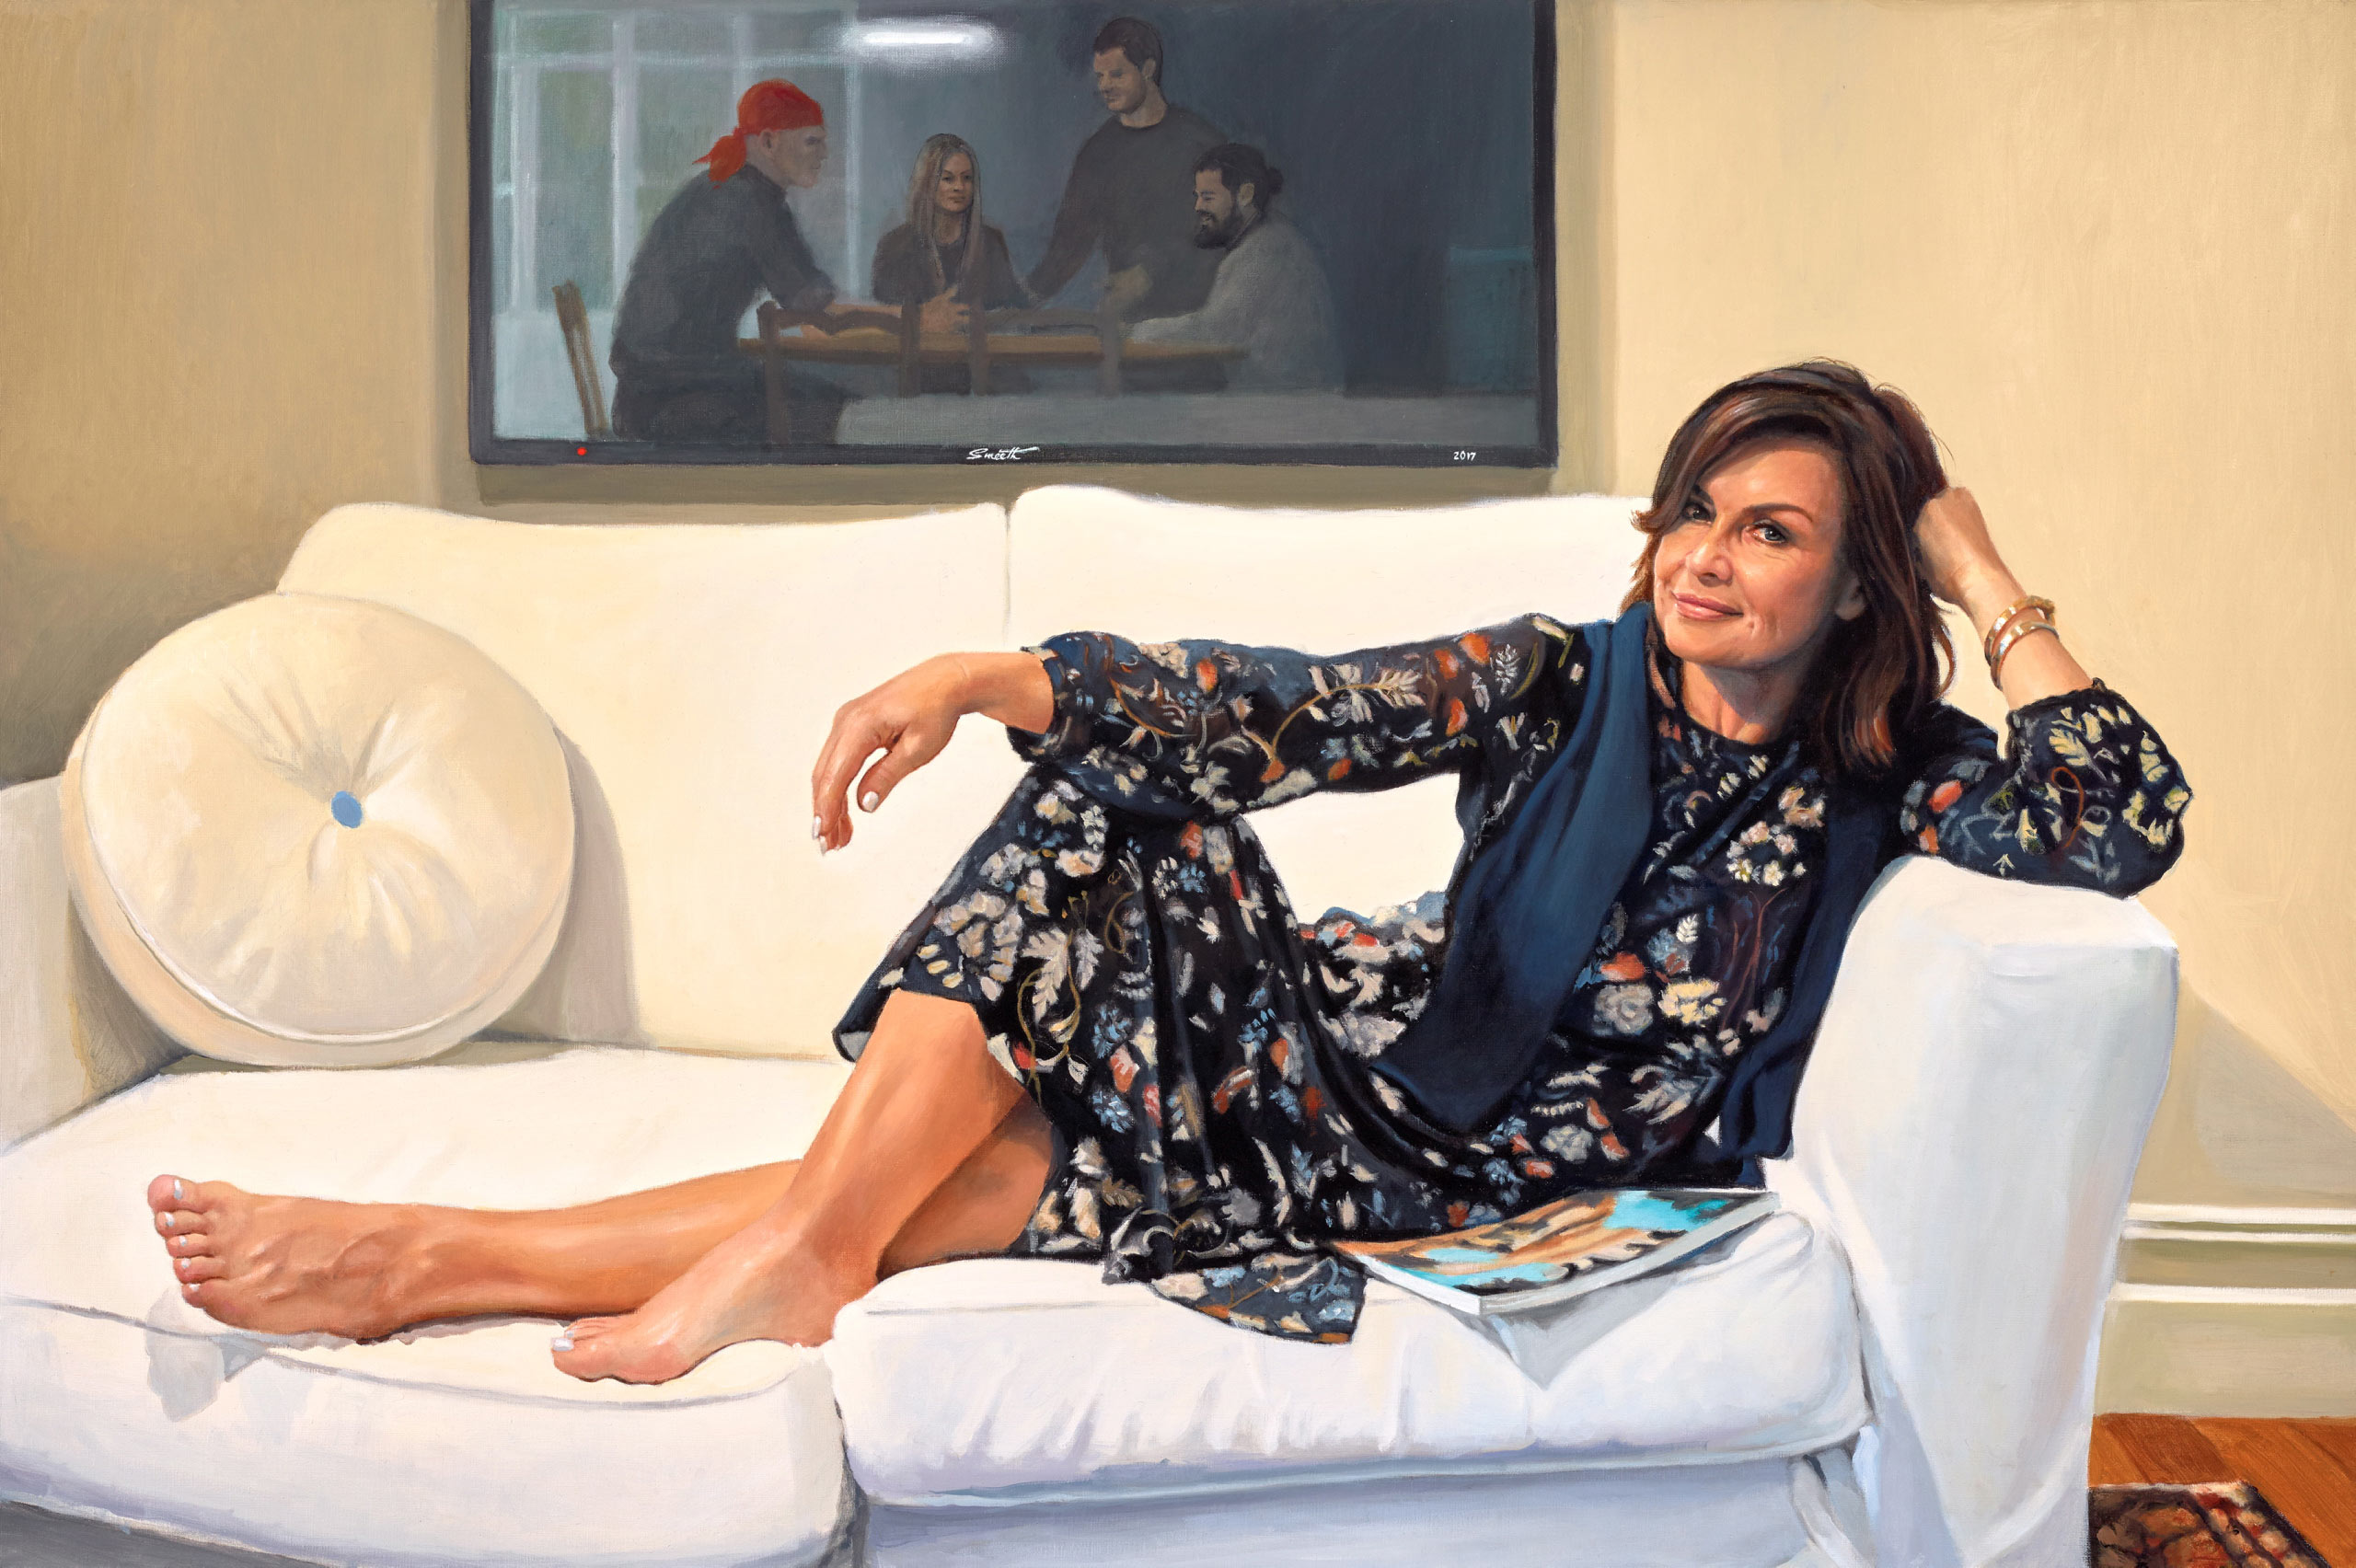 Lisa Wilkinson Portrait Wins Packing Prize In The Archibalds